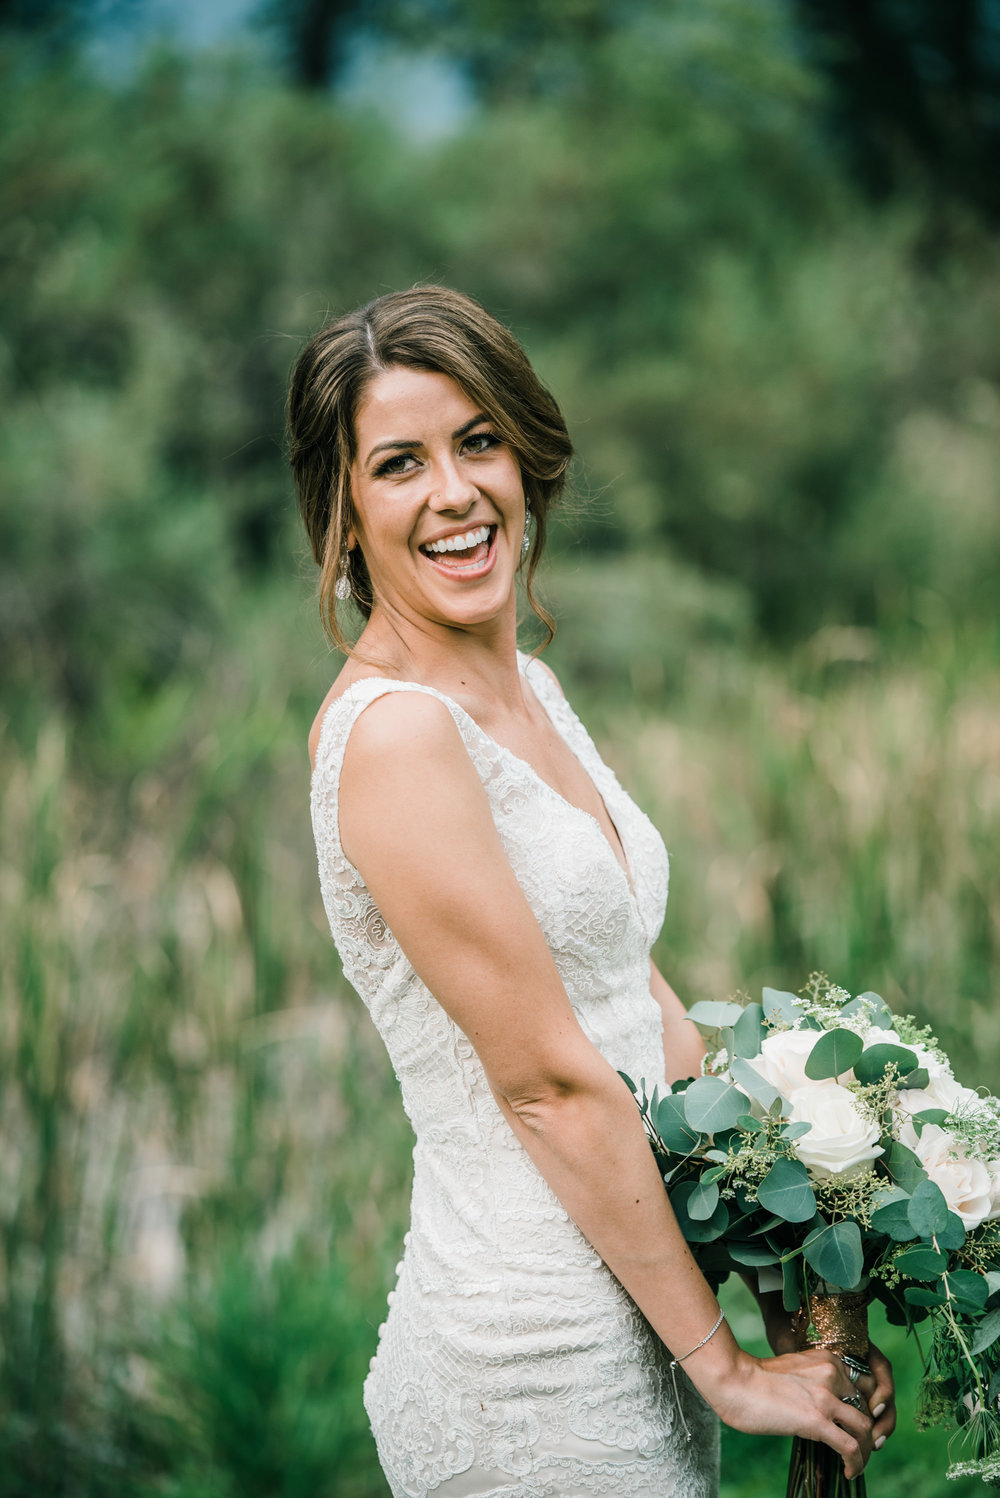 Bride at spirited, genuine, colorful Colorado mountain wedding photographer